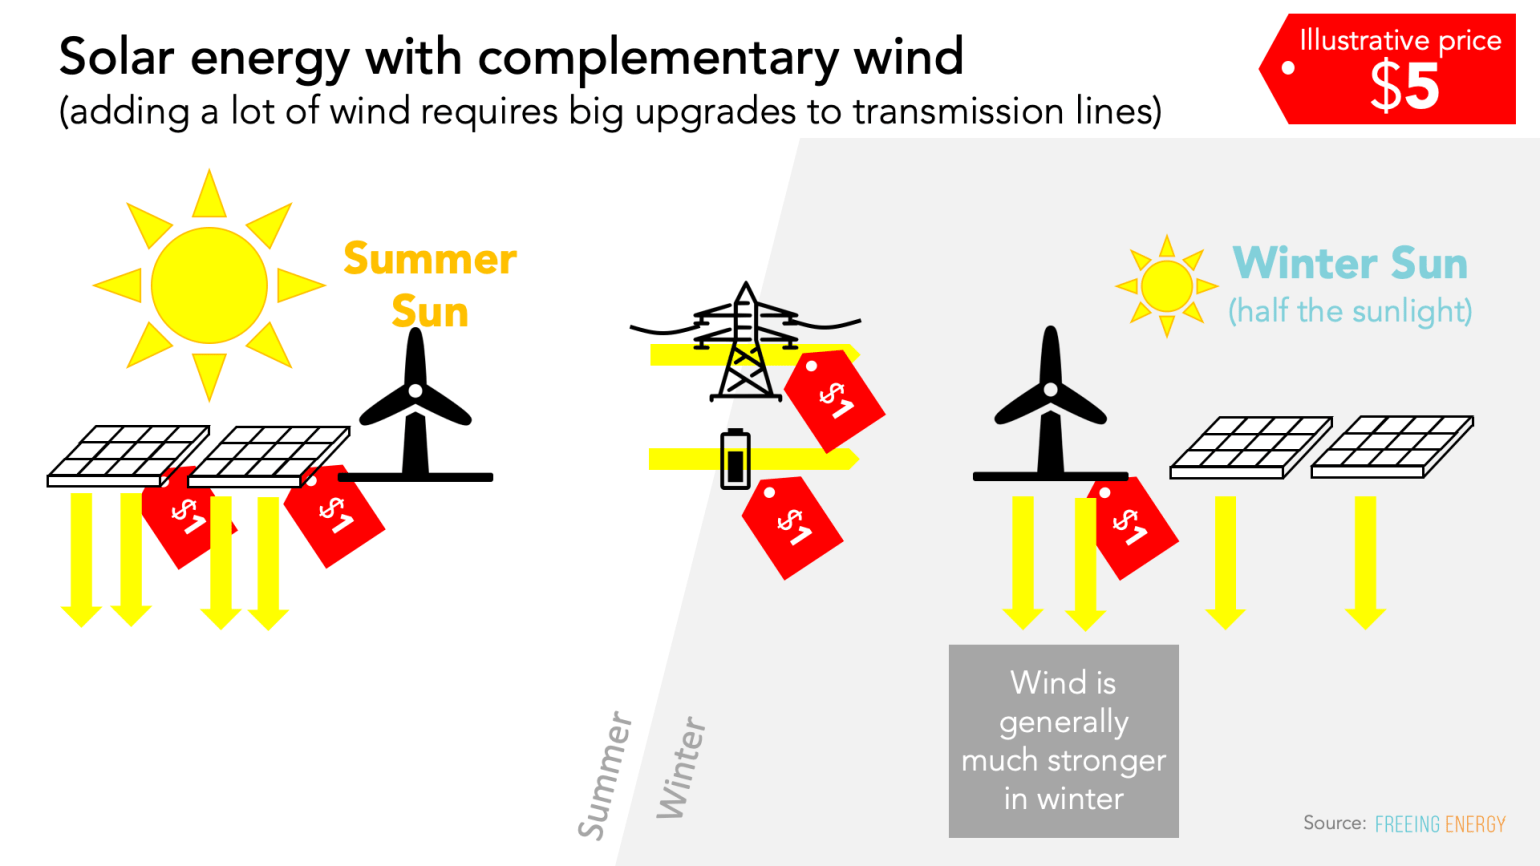 solar energy with complementary wind - even fewer batteries are required